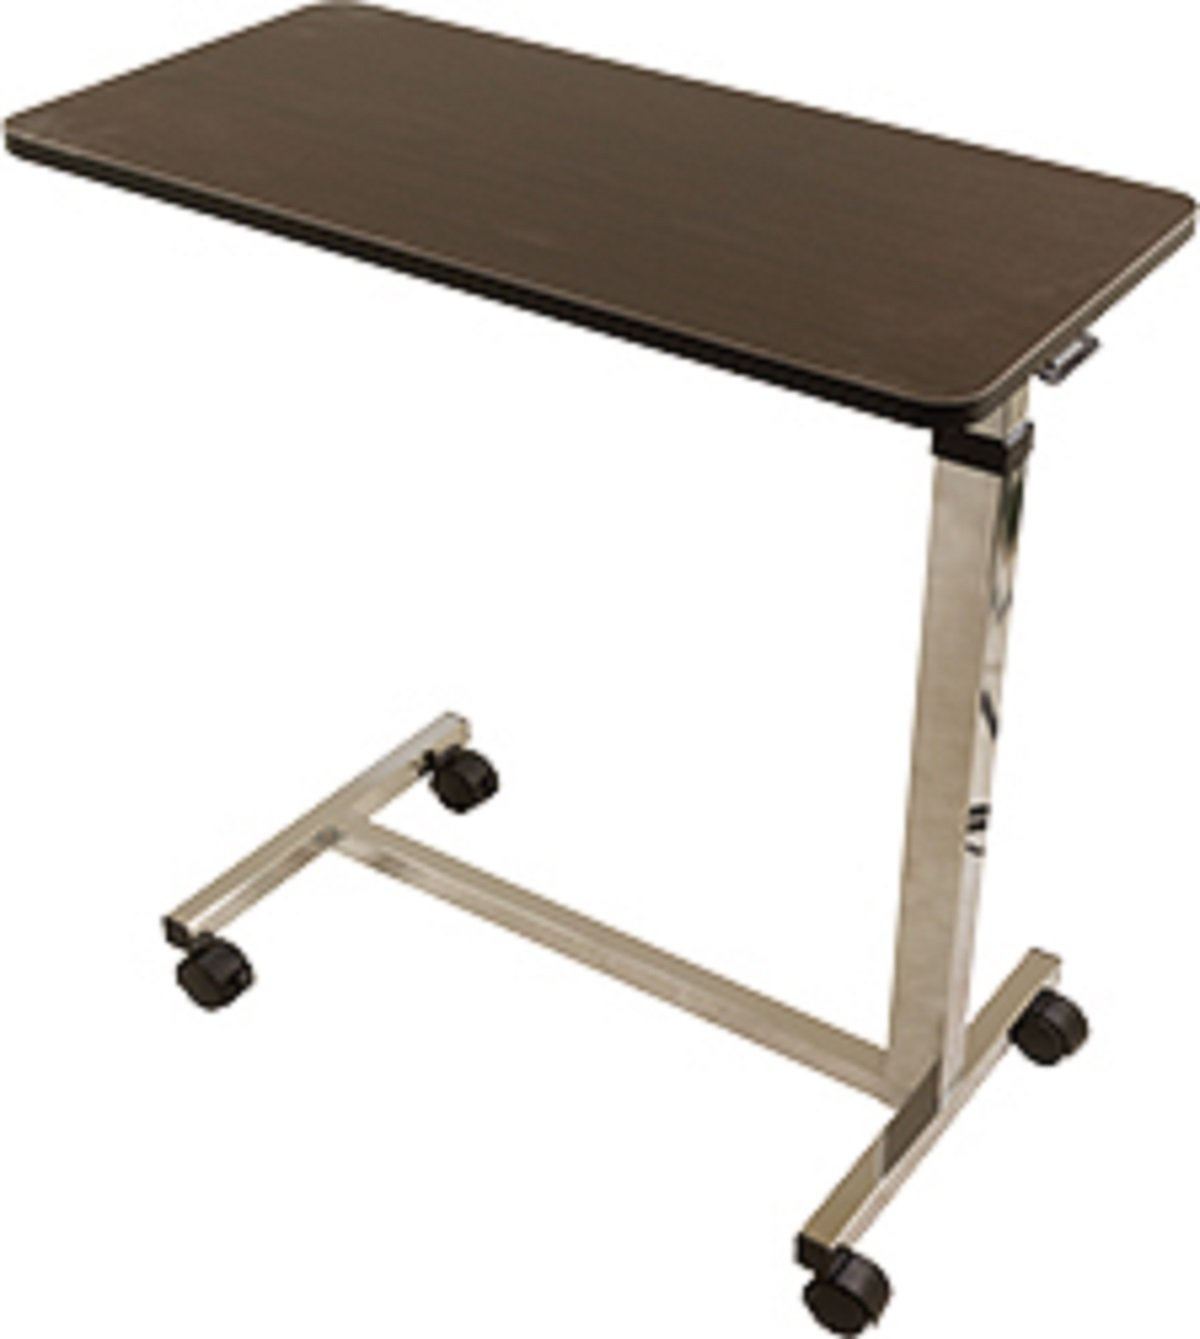 Roscoe Medical - Overbed Table Non tilt top - CM